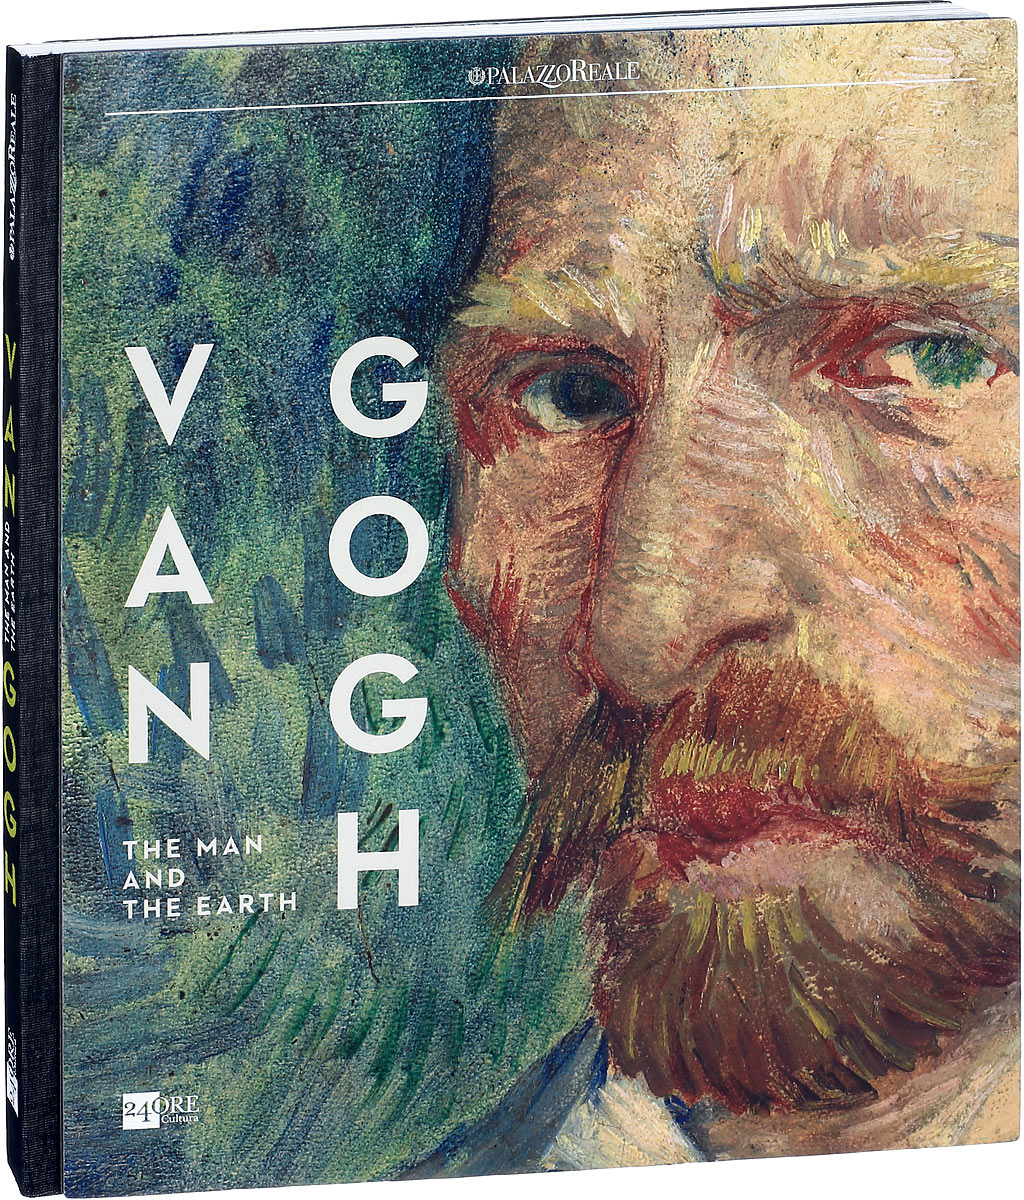 Van Gogh: The Man and the Earth